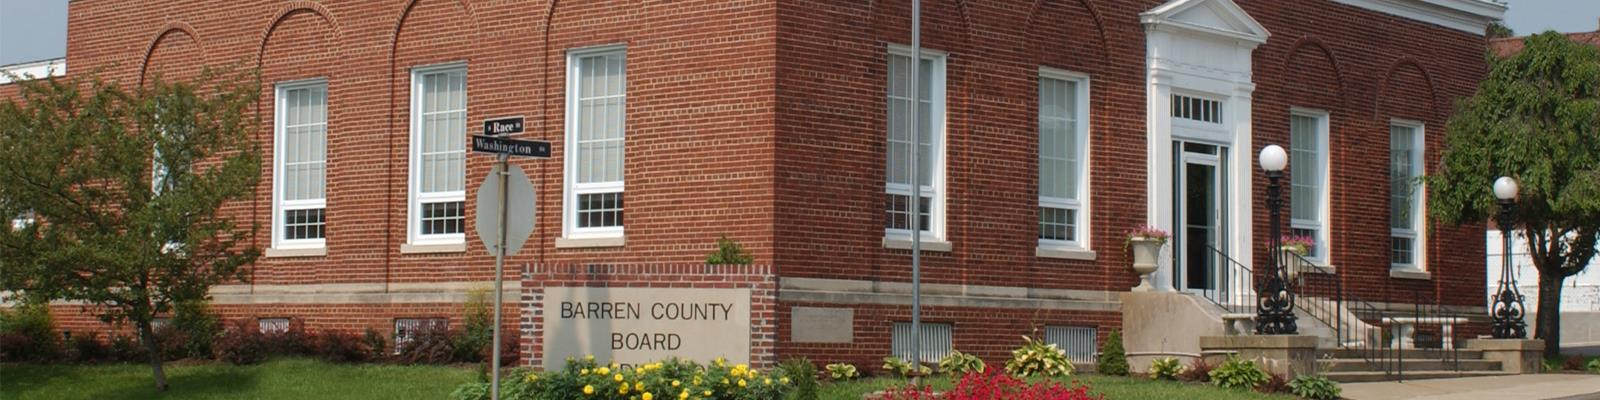 Photo of Barren County Board of Education